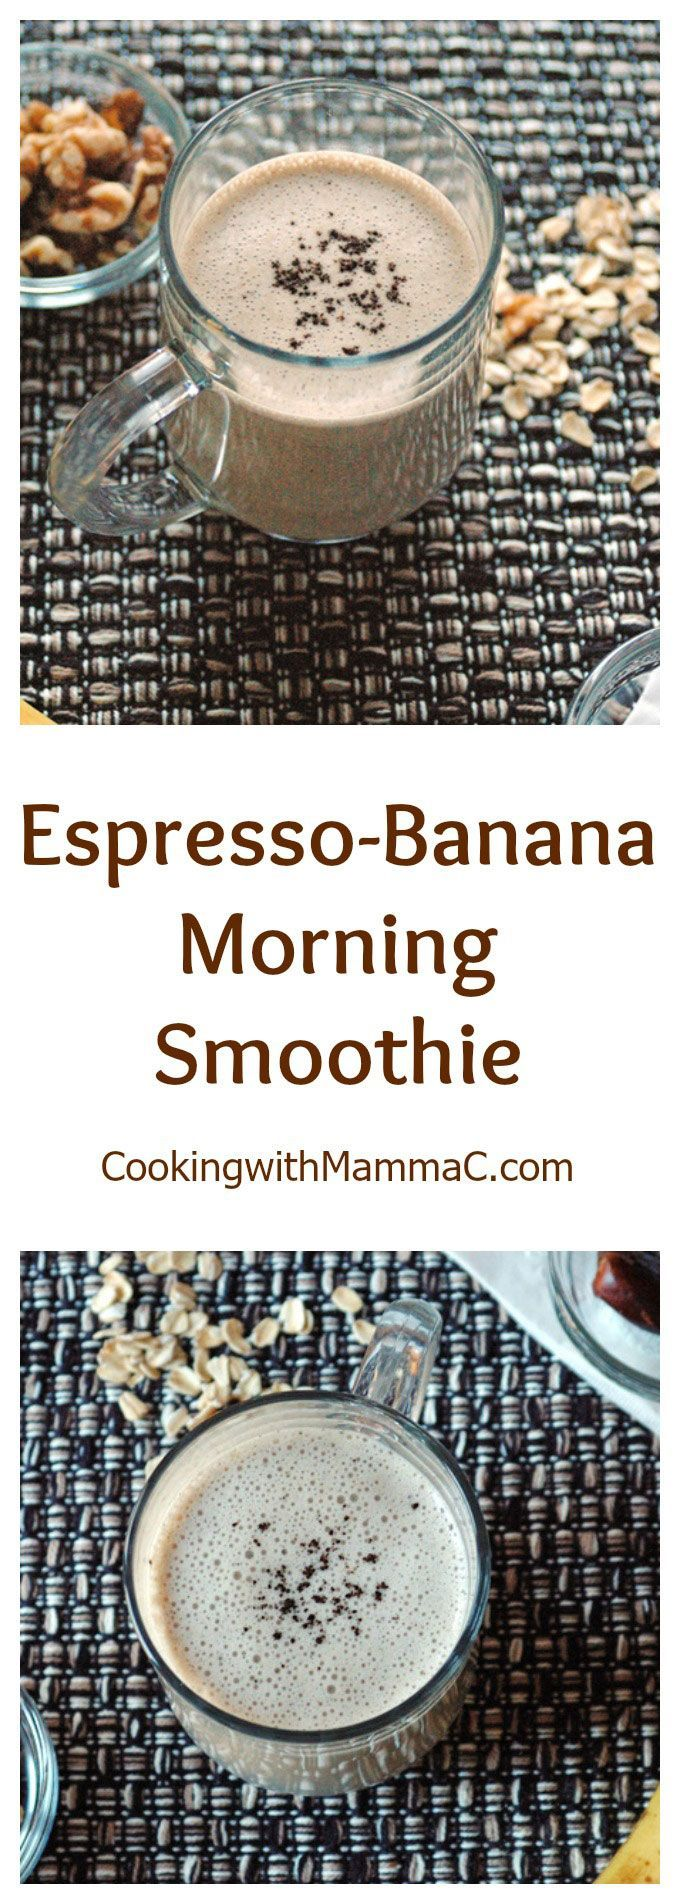 Espresso-Banana Morning Smoothie - A delicious morning beverage that's vegan and…